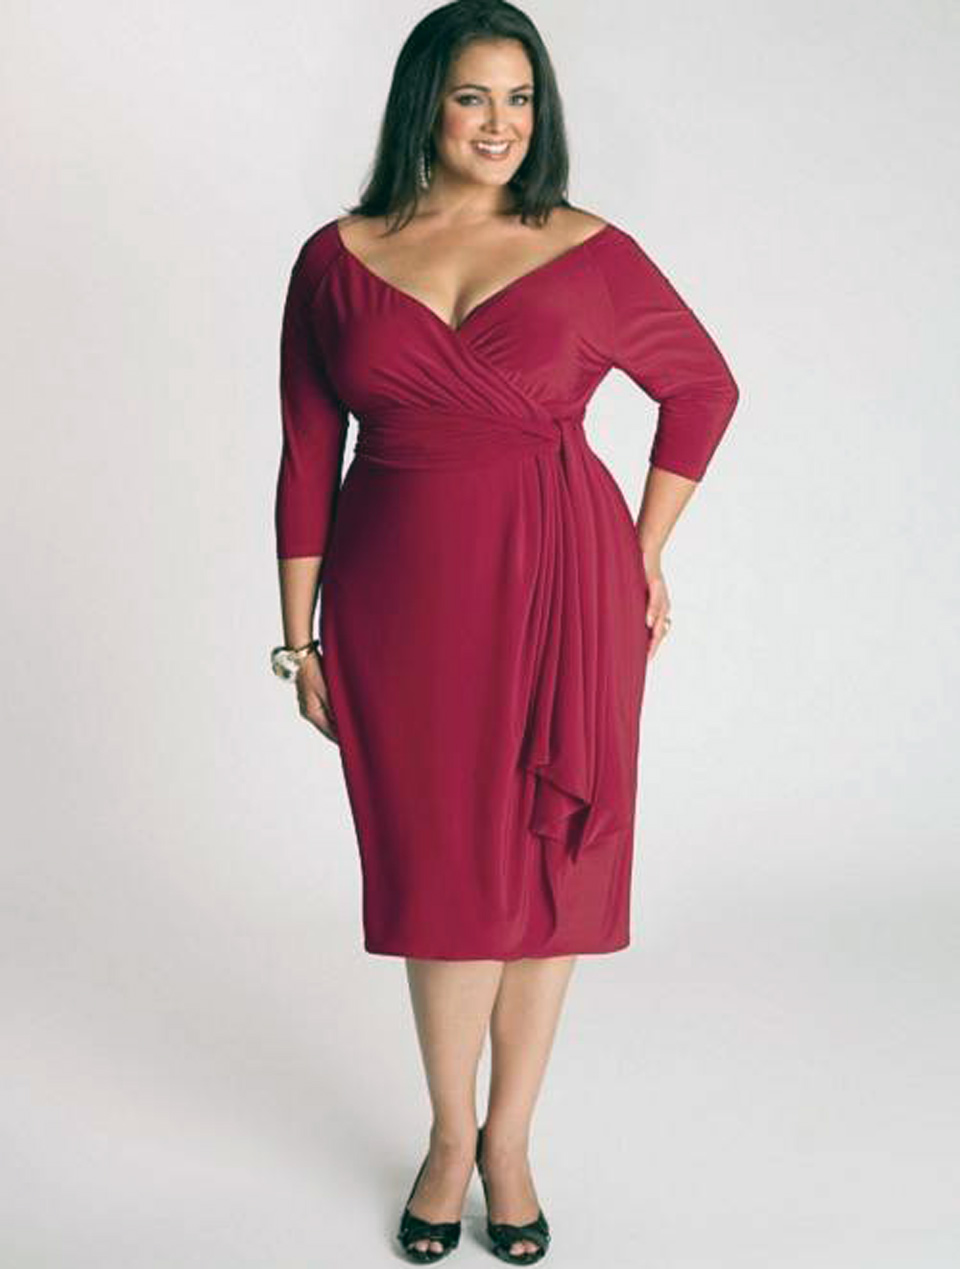 Cocktail Dresses Plus Size Women Macys